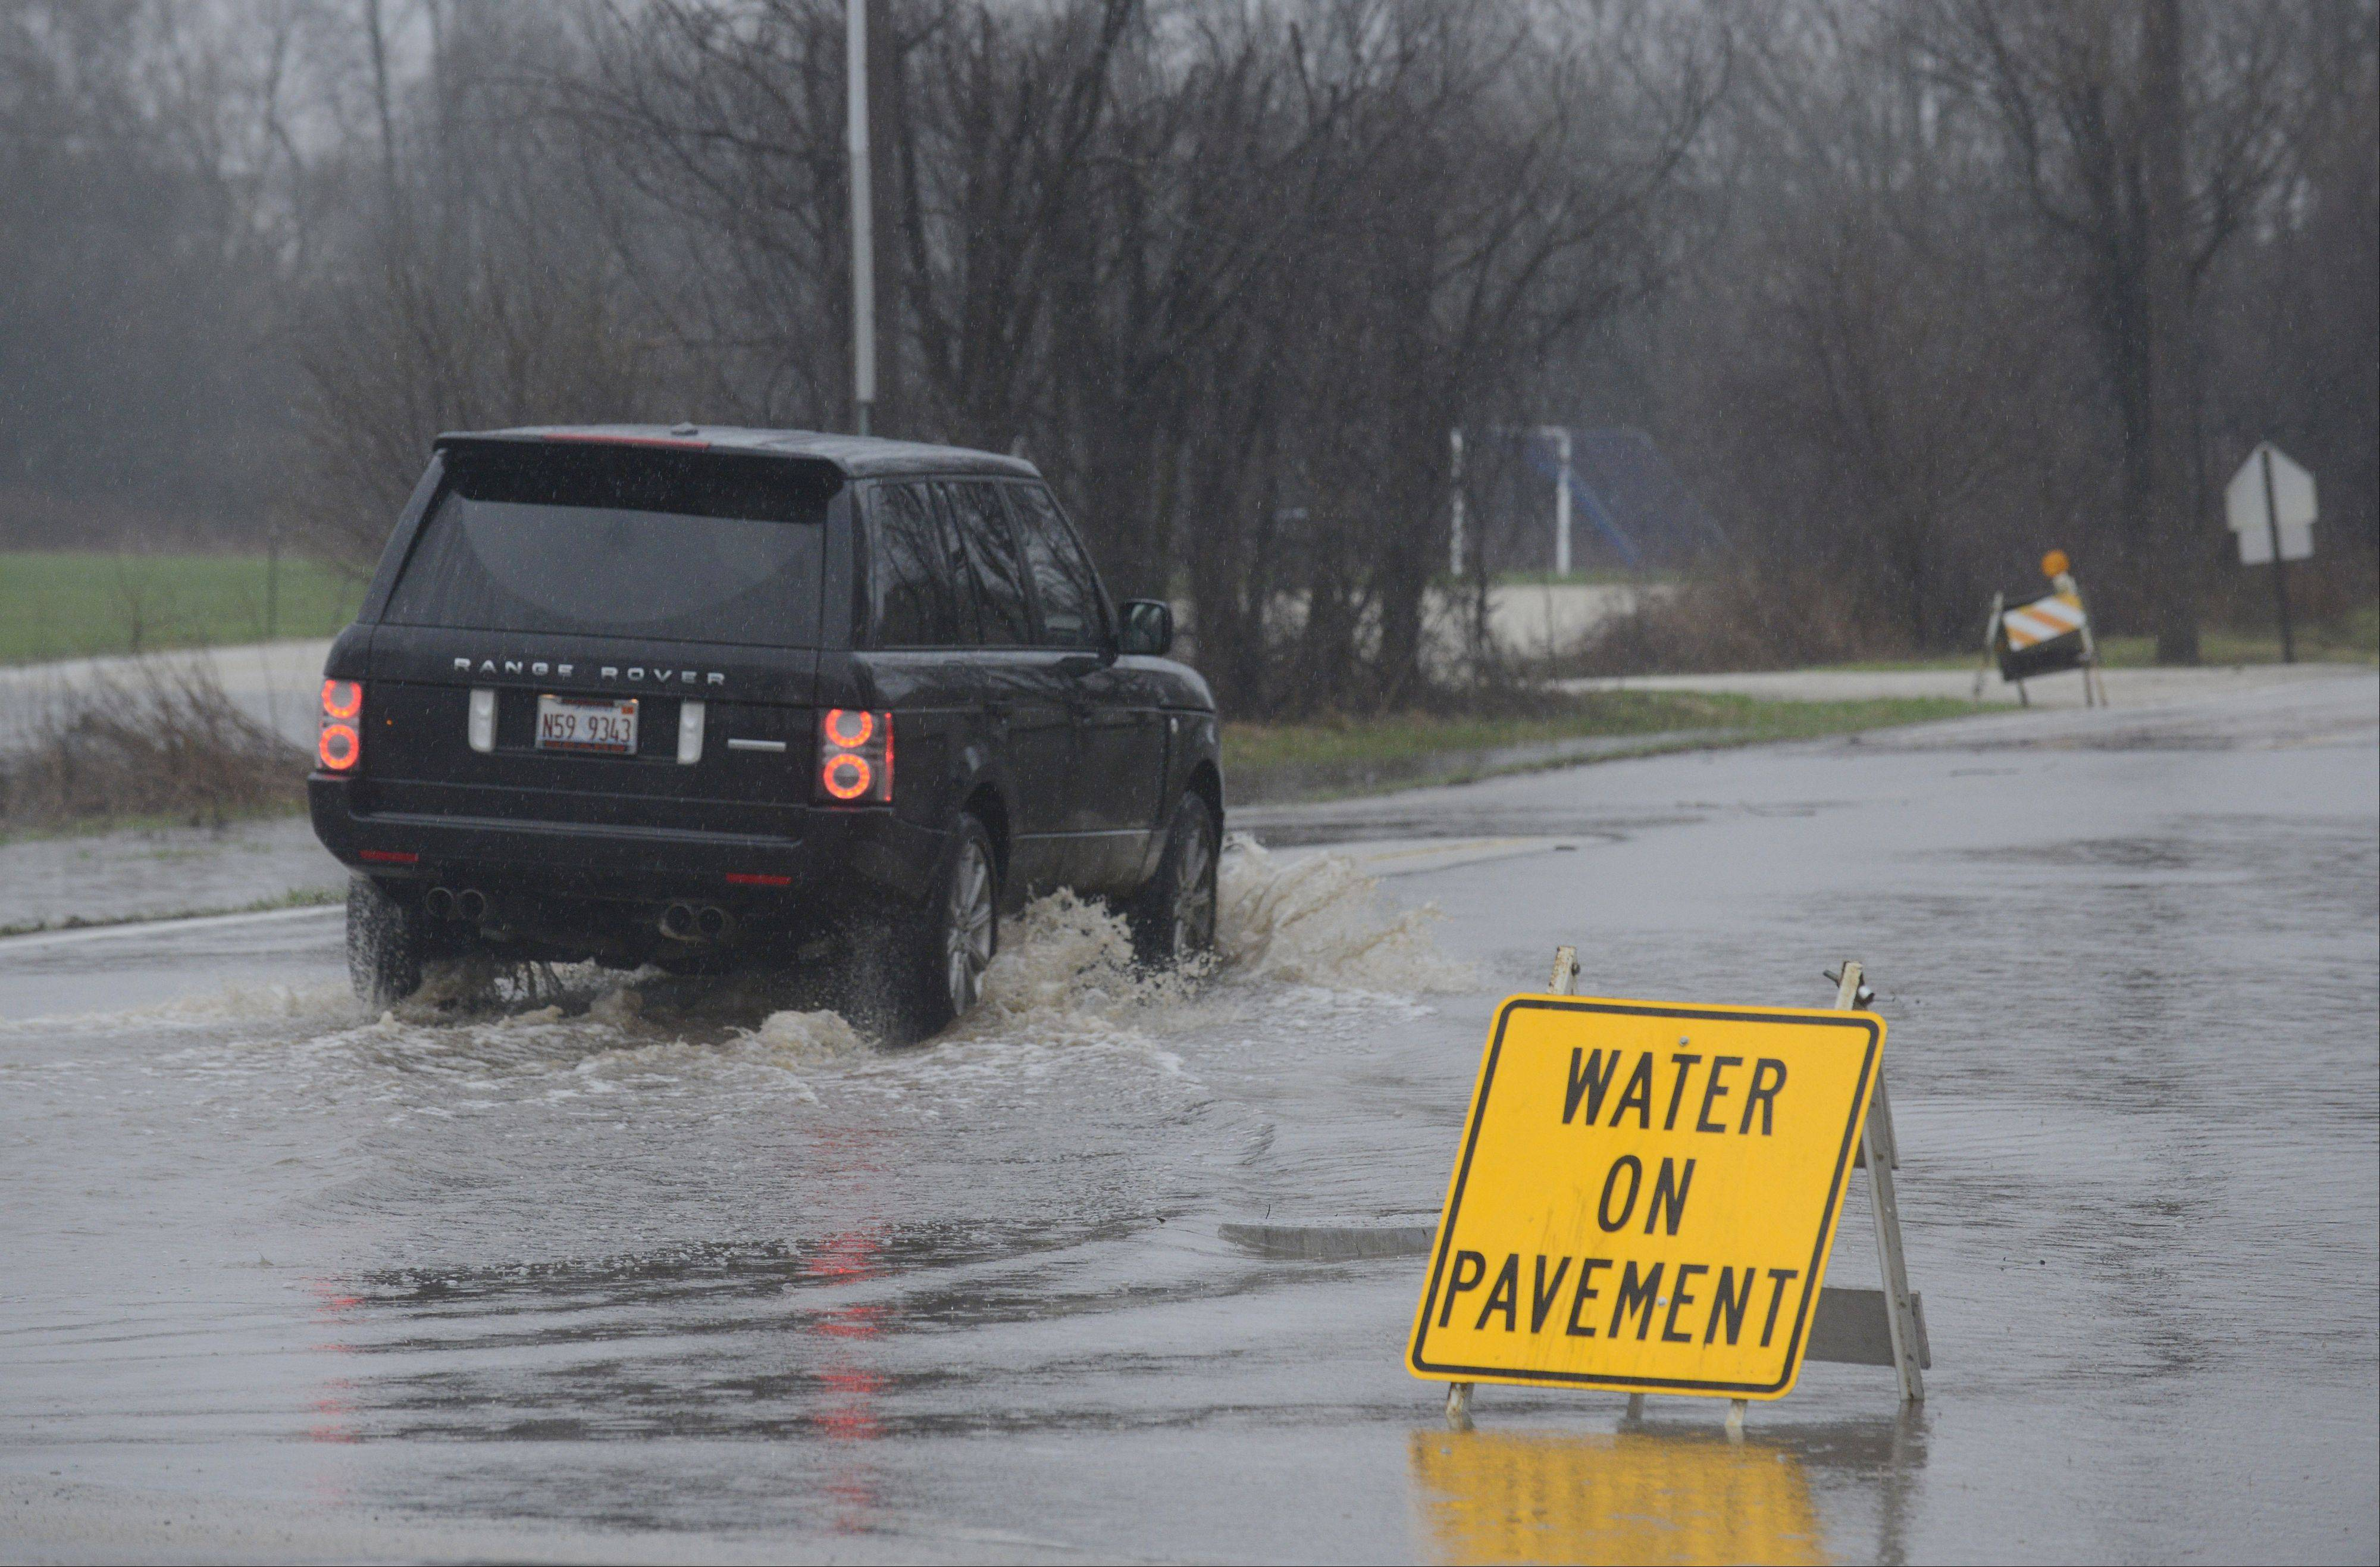 Cars still pass through a rapidly flooding Peck Rd at Dean Street in St. Charles on Thursday, April 18. The north side of the street was flooded allowing only for passage on the south side.